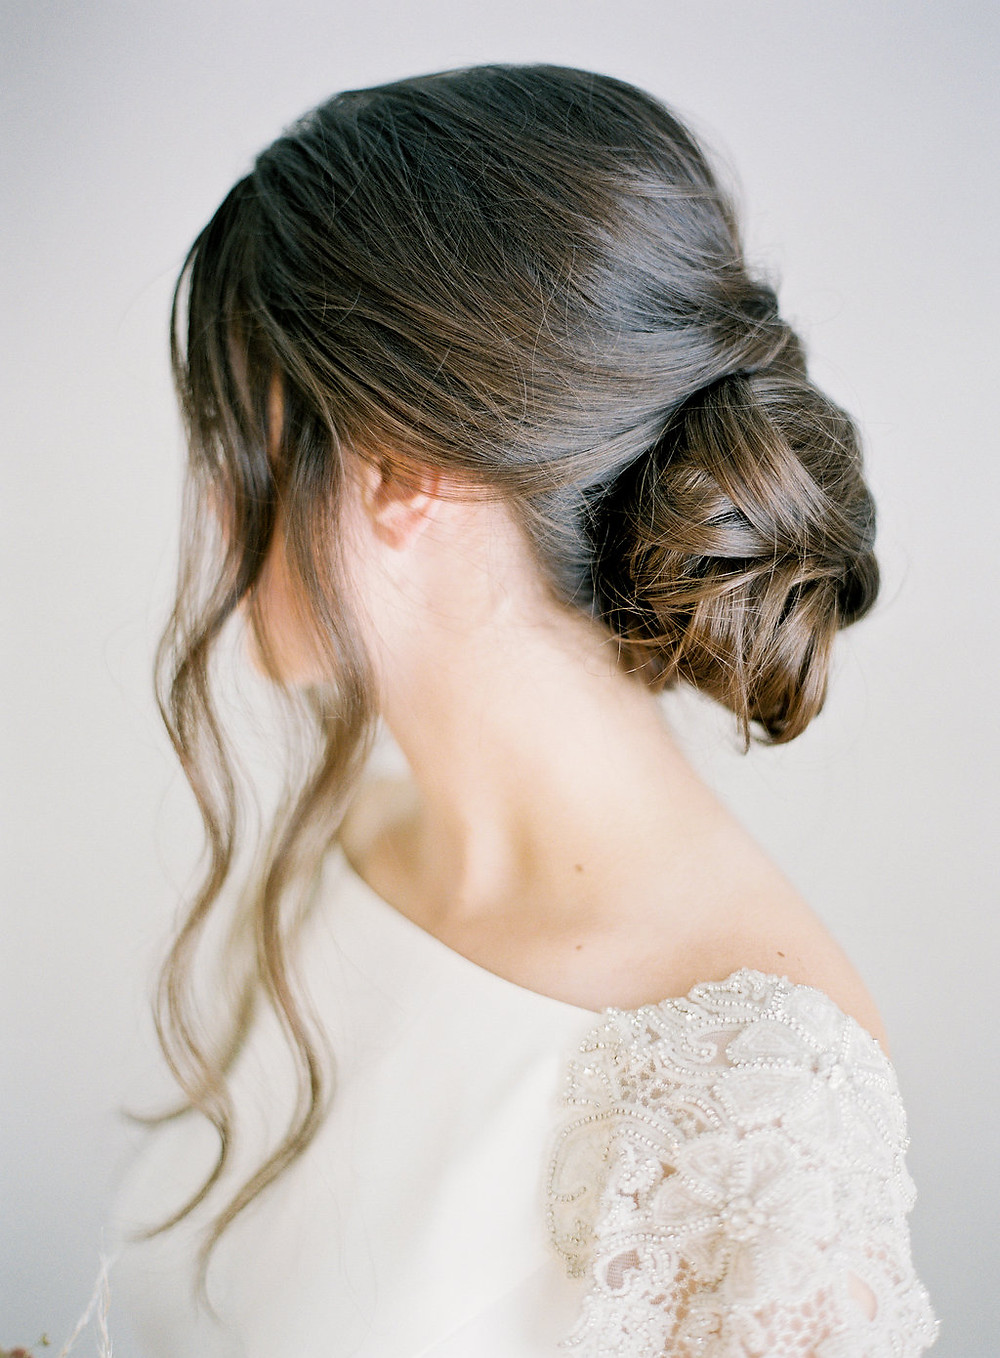 Modern, Boho Simple Wedding Bridal Hairstyle - Updo